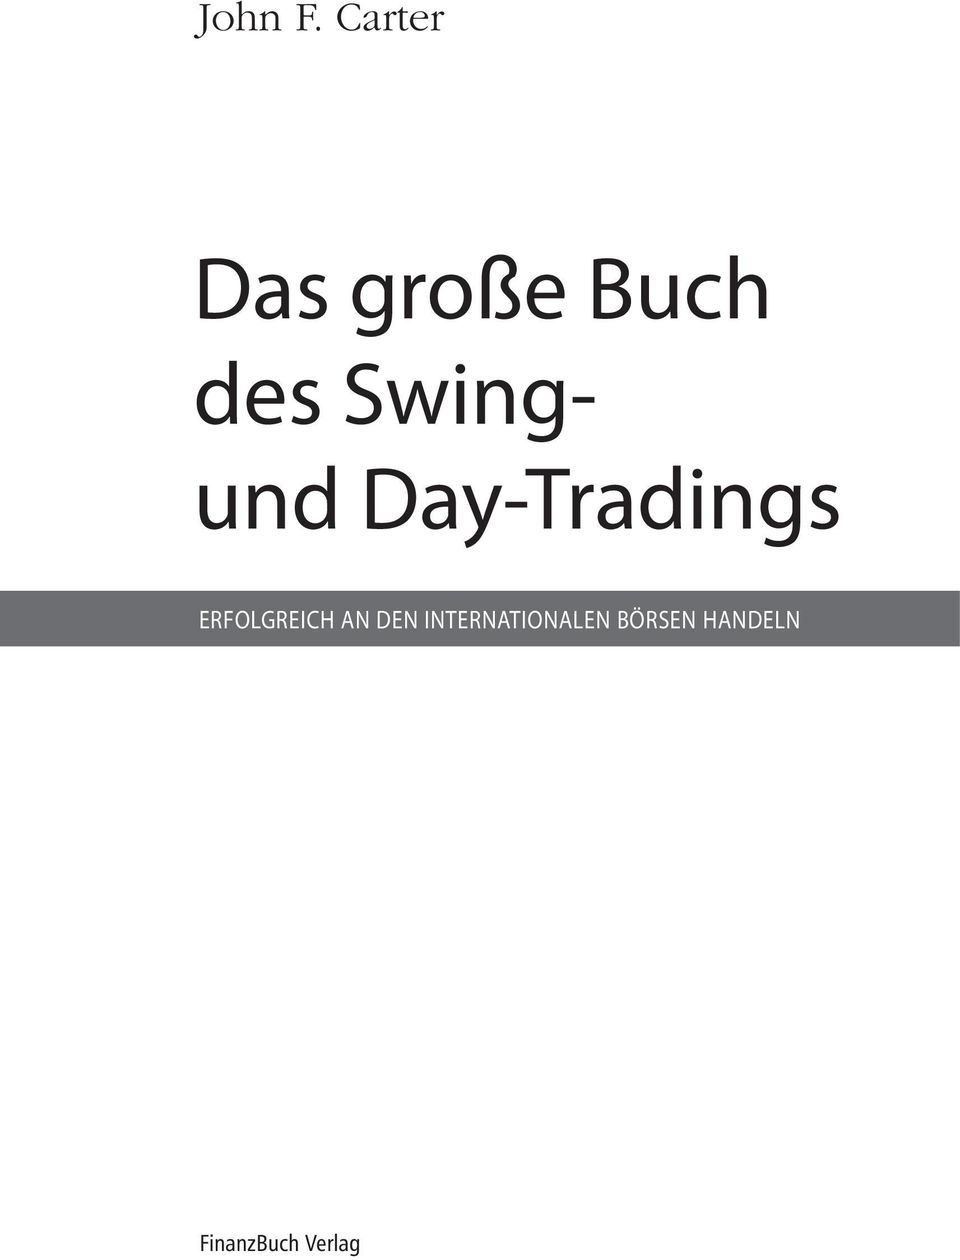 Swing- und Day-Tradings